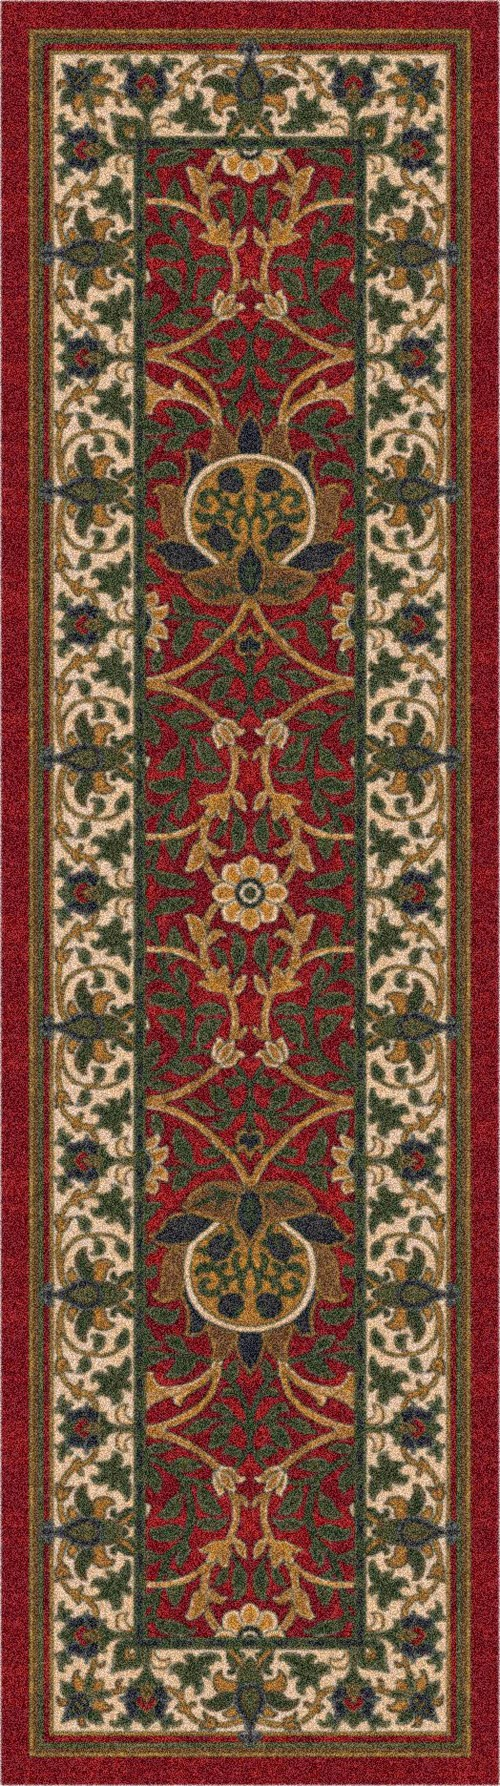 Indian Red (235) Traditional / Oriental Area Rug